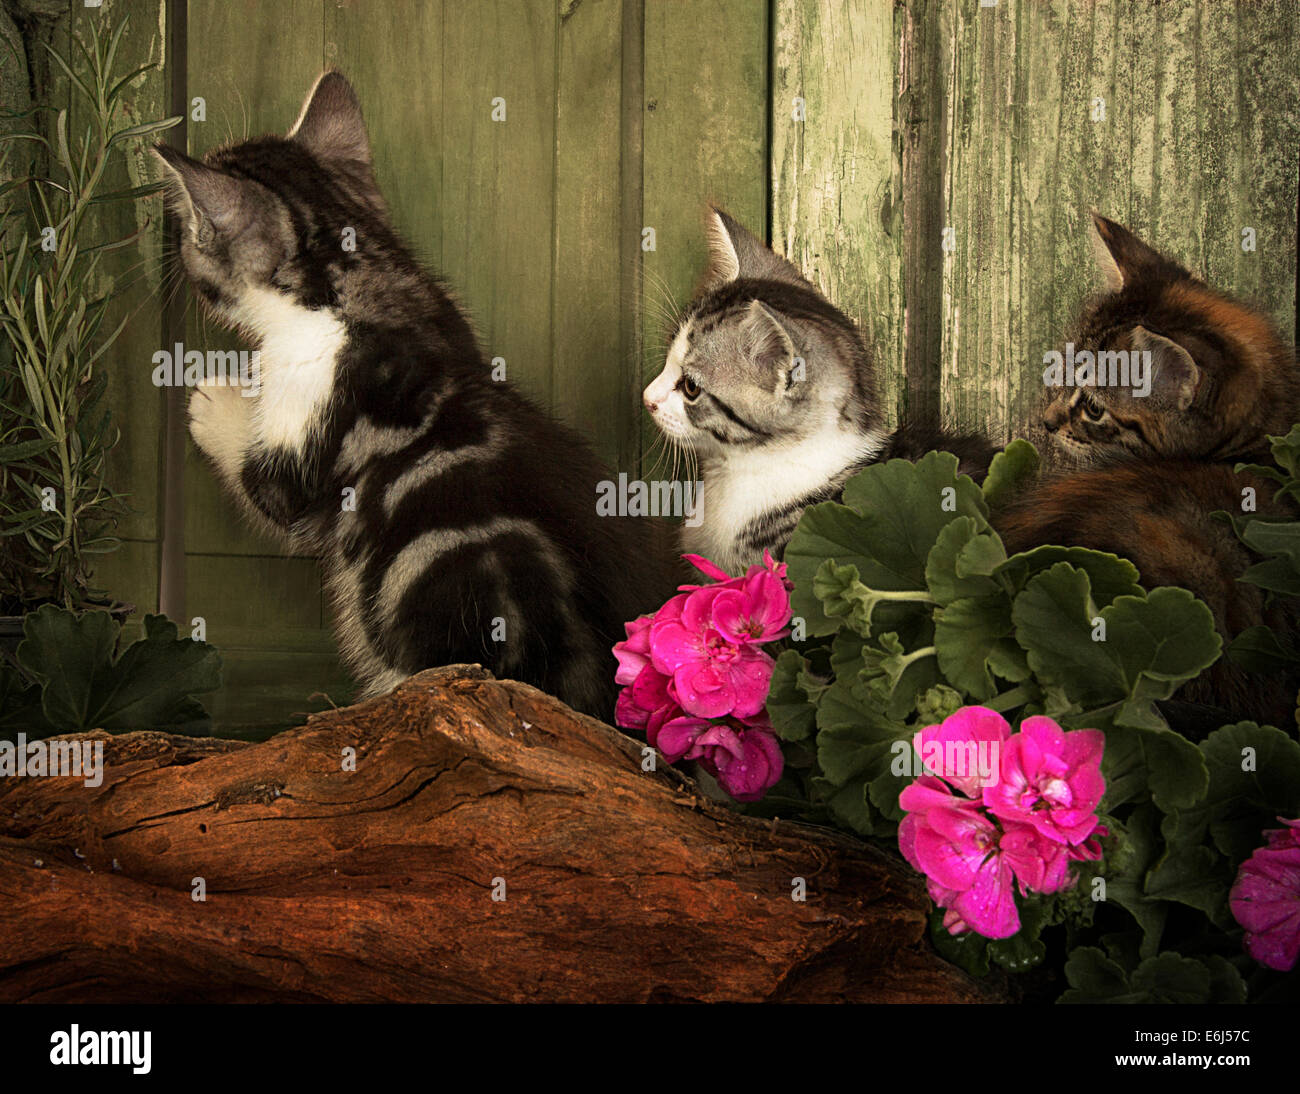 Three Young Kittens At A Door - Stock Image